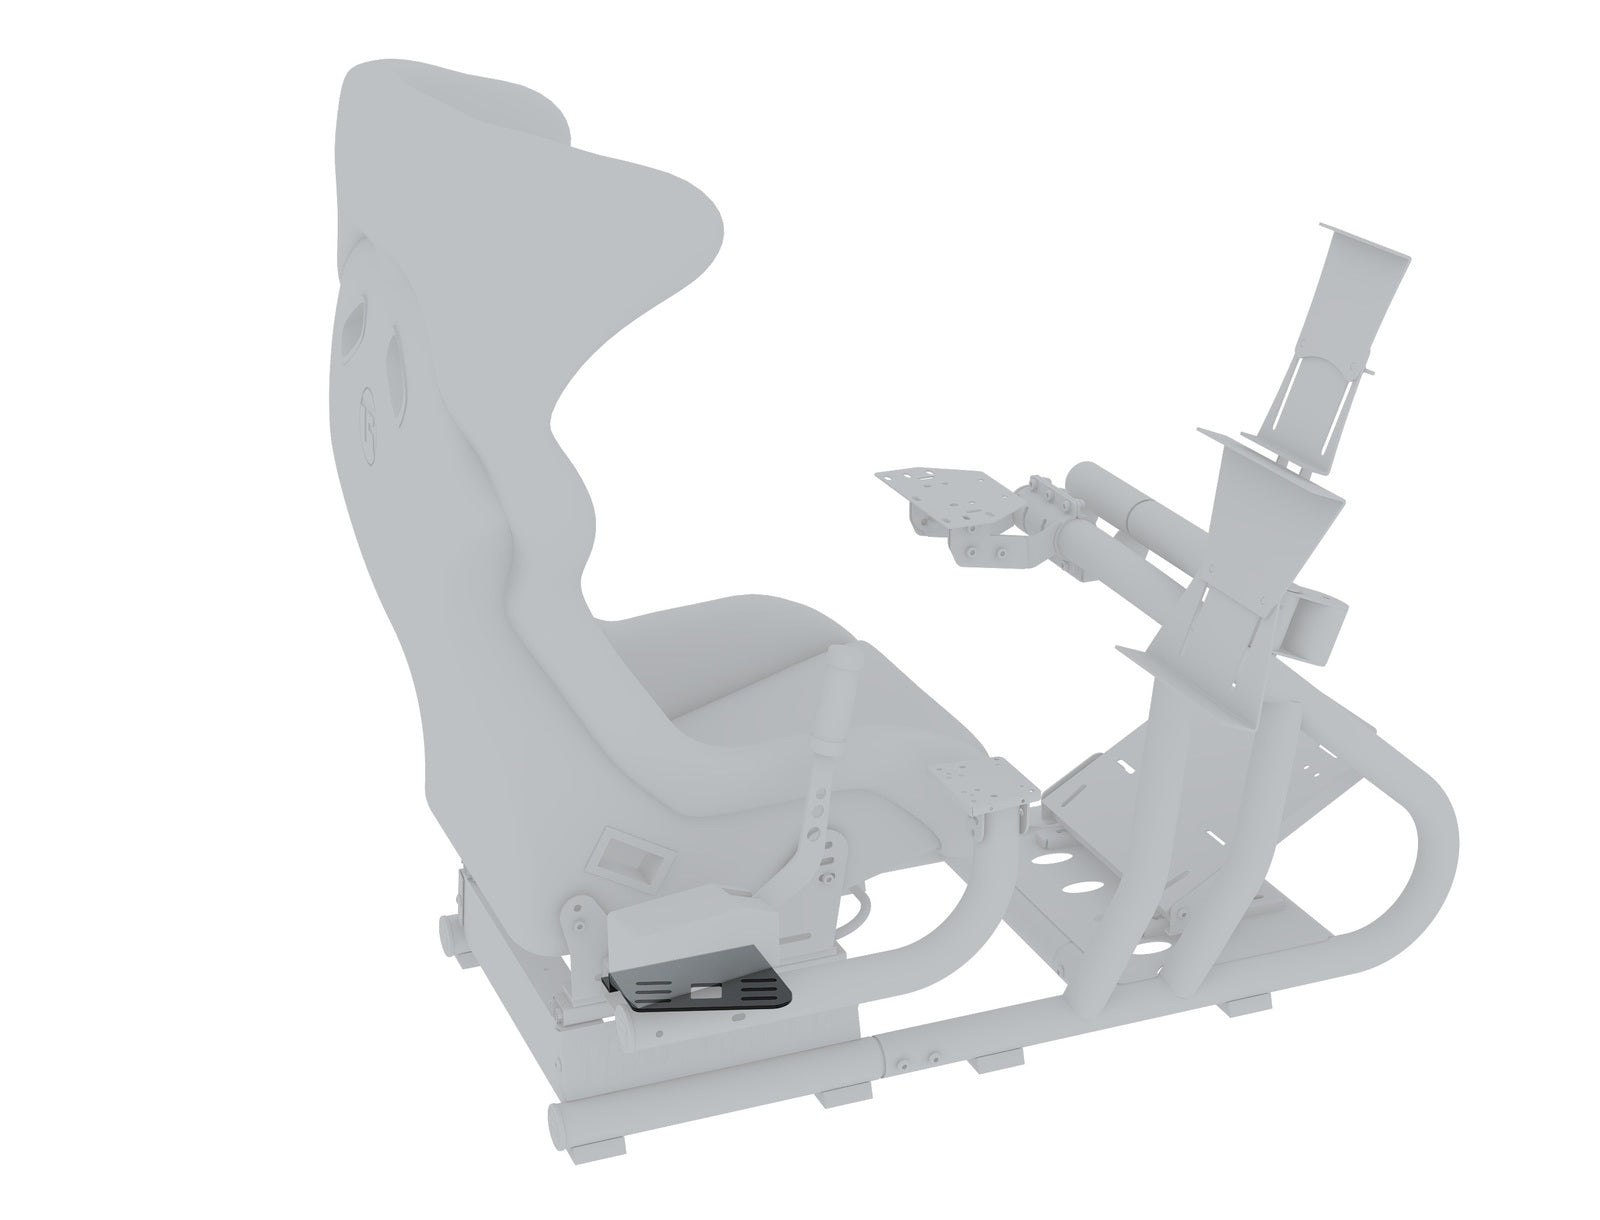 Trak Racer Handbrake / Shifter / Flight Sim Mount